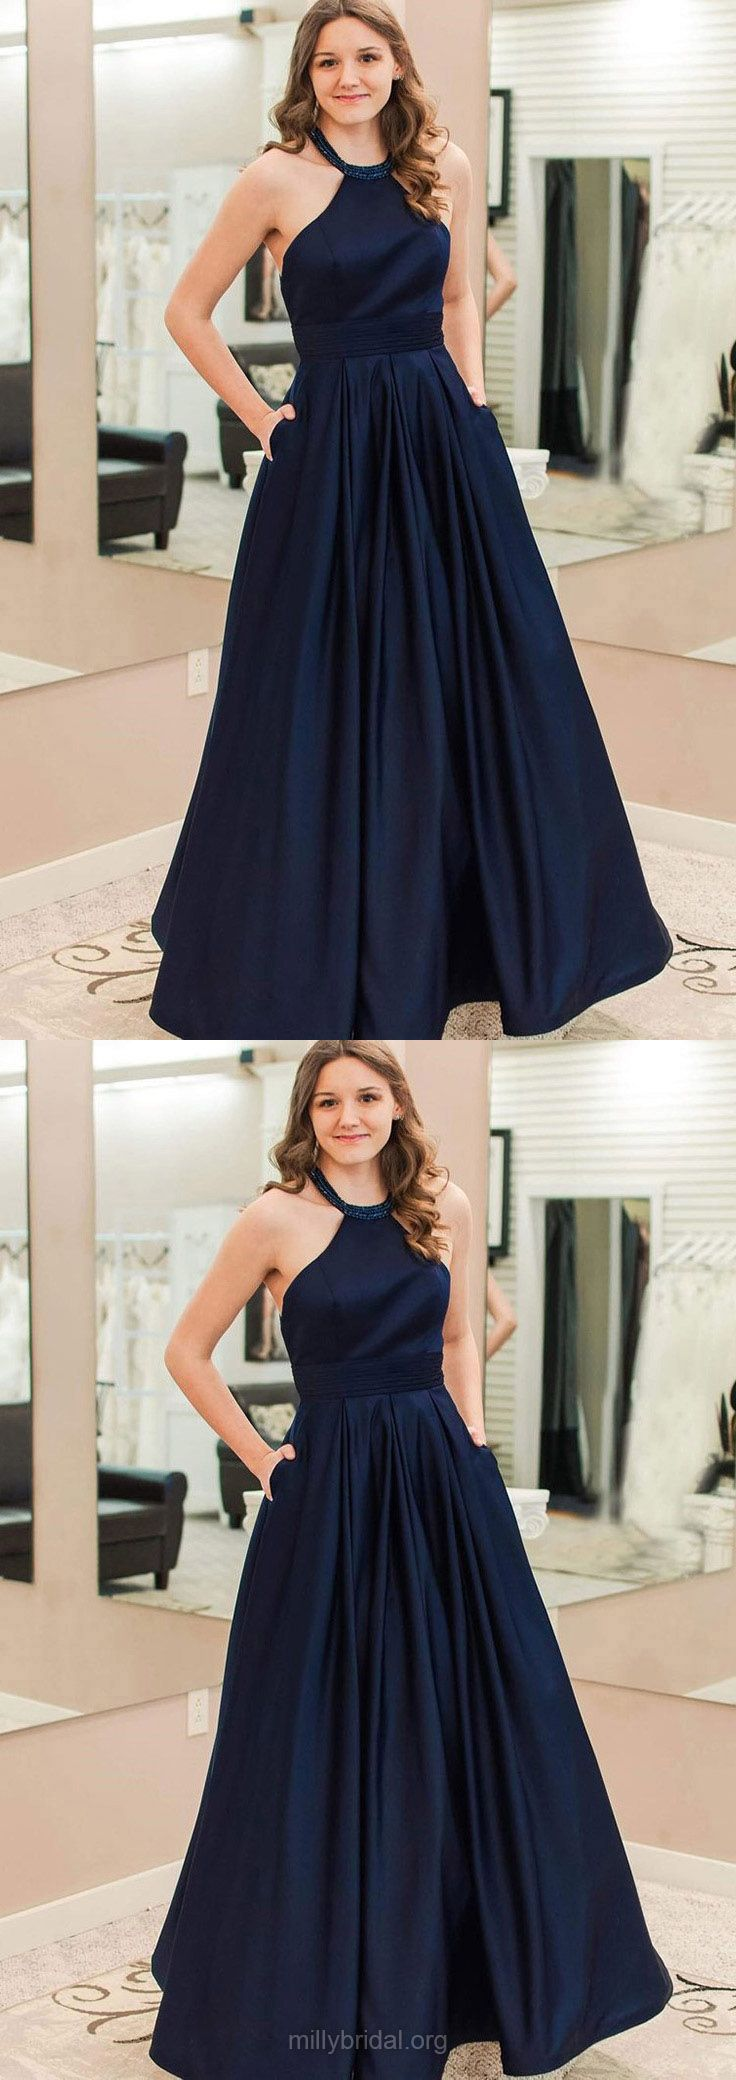 Long prom dressesdark navy prom dresses modest prom dresses